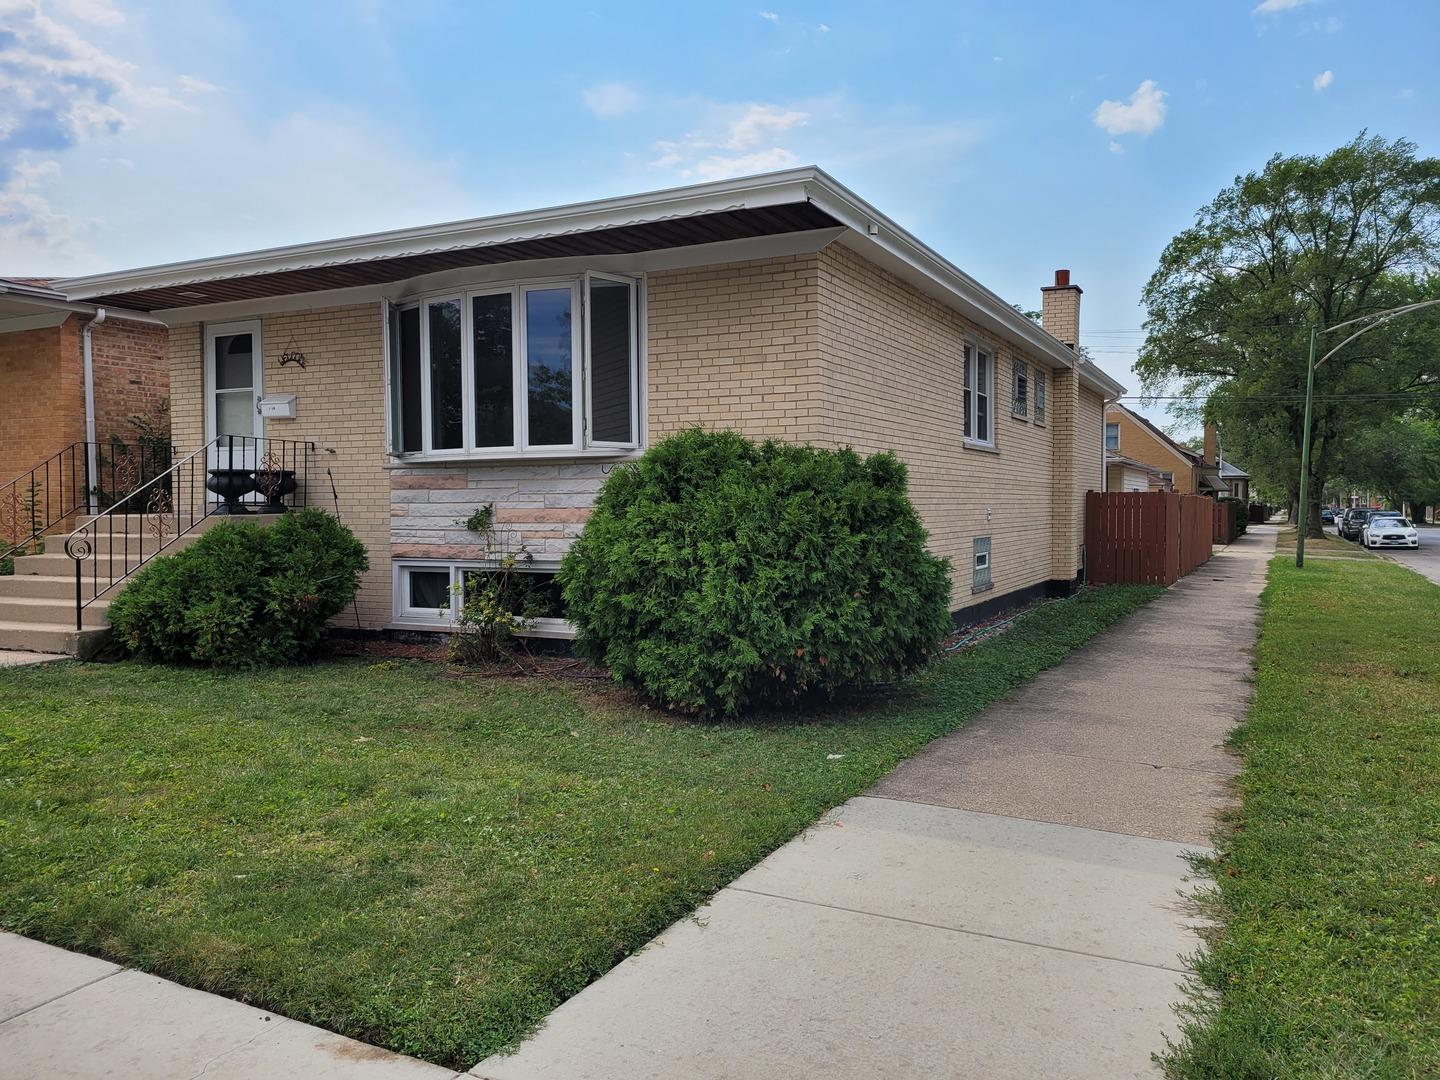 3058 N OLEANDER Avenue, Chicago, IL 60707 - #: 10849023